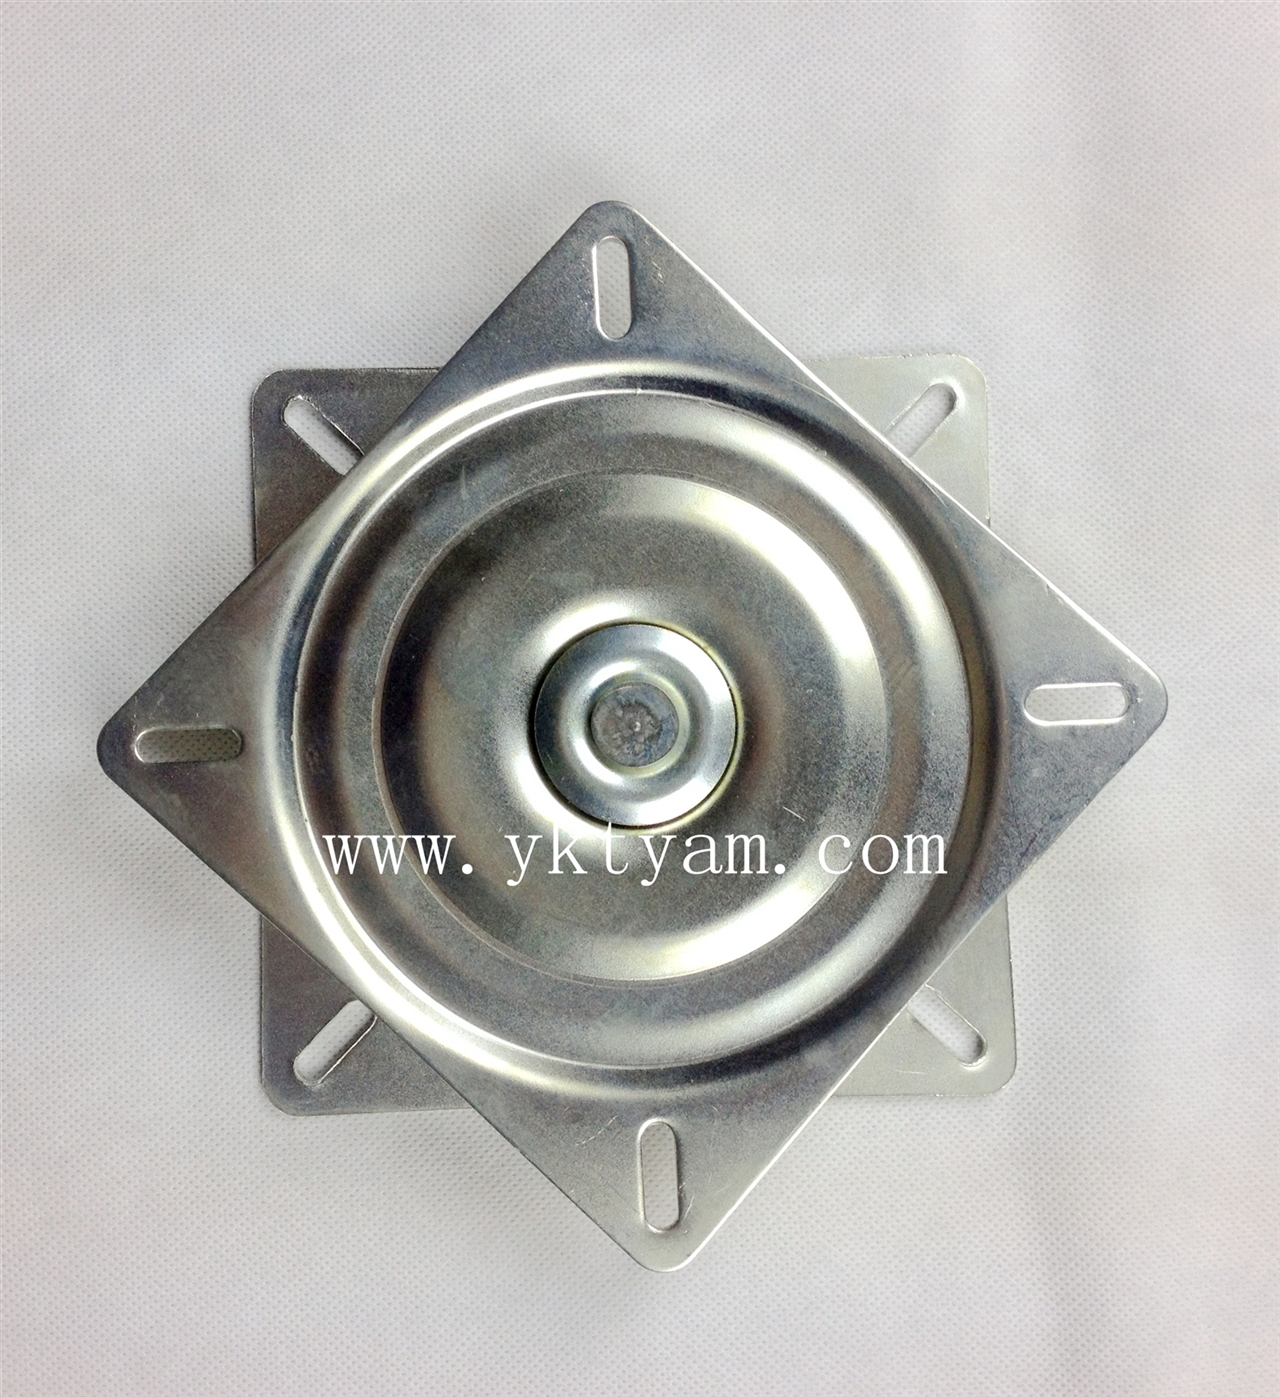 Metal Swivel Plate for Bar Stool